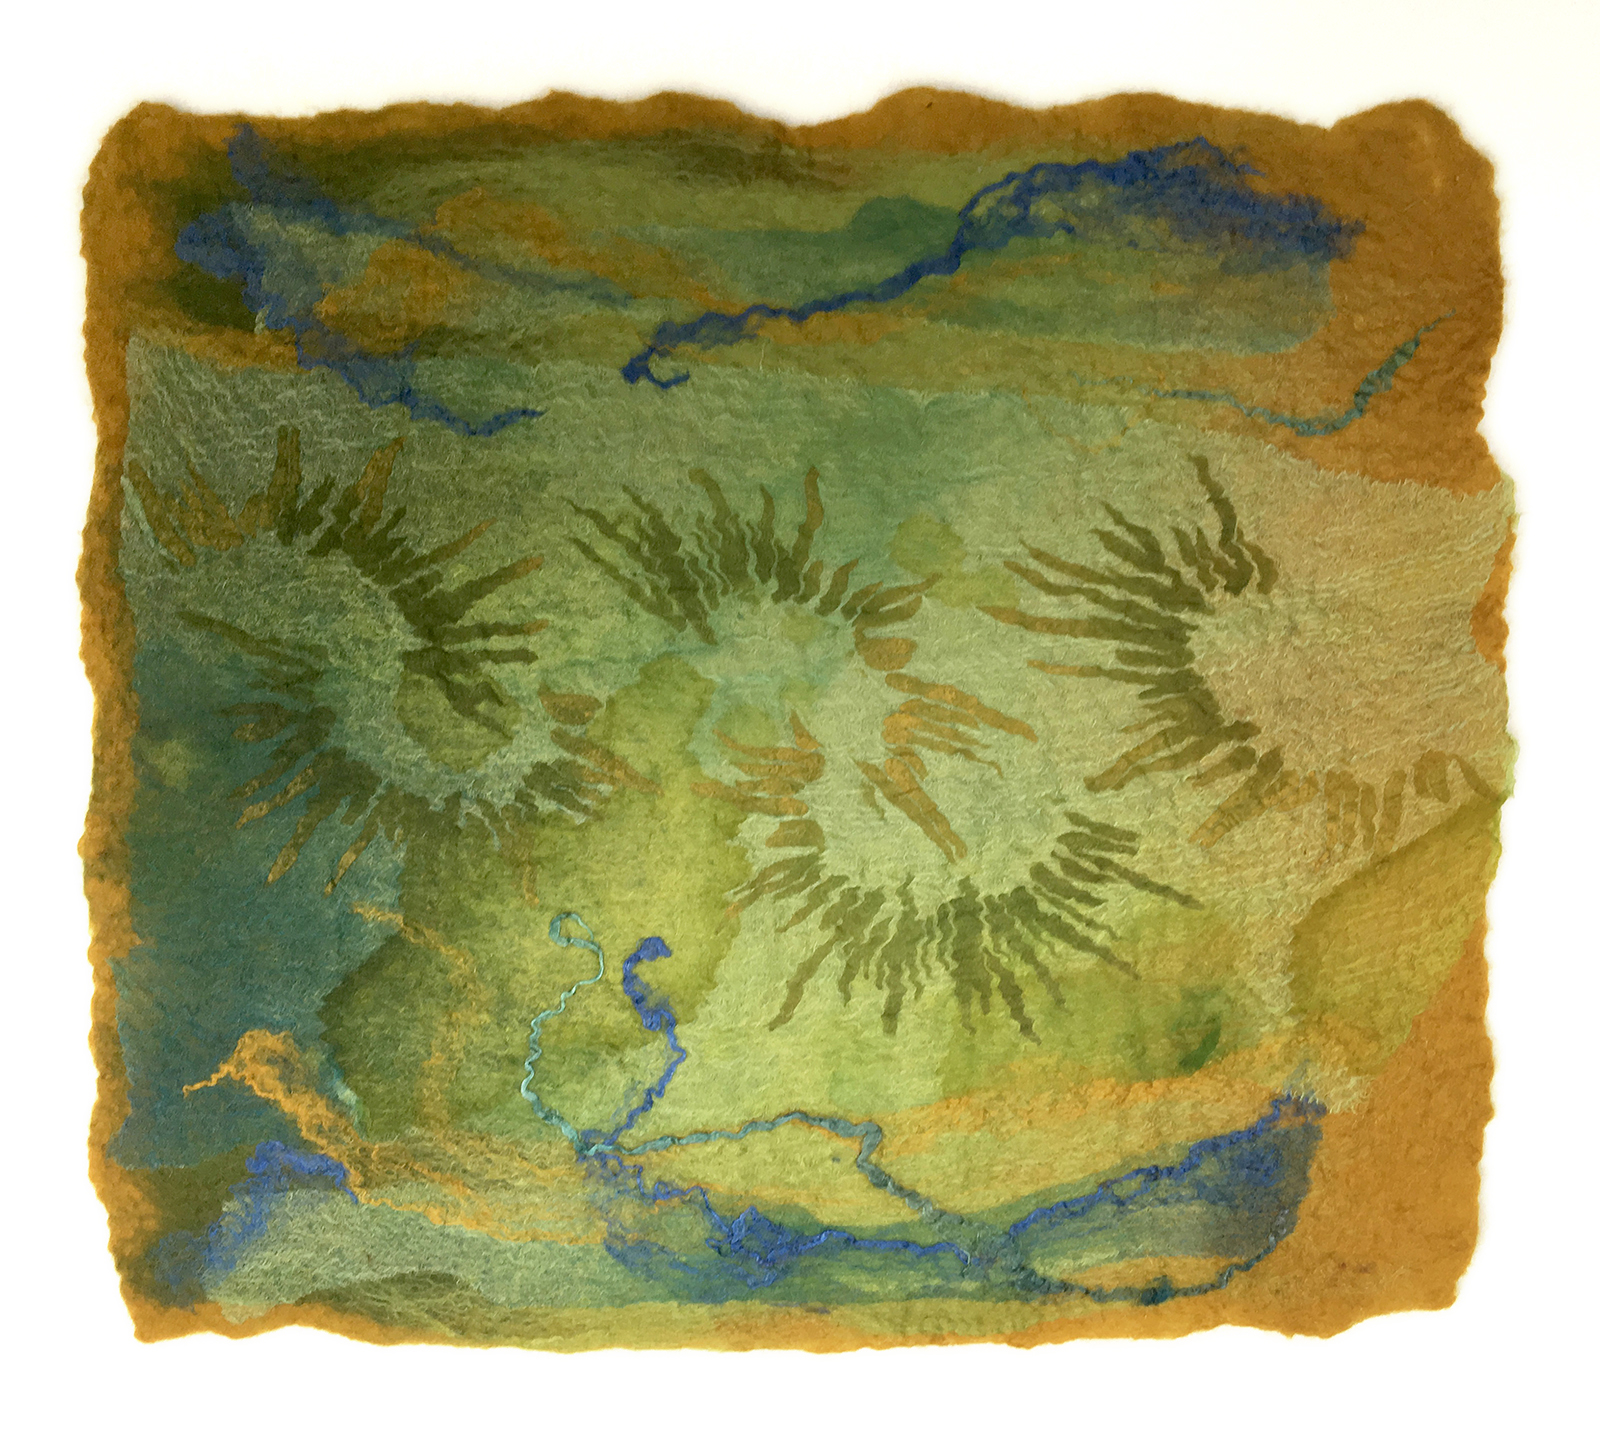 Summer Solstice by Melanie West, 2019 wool and hand painted silk